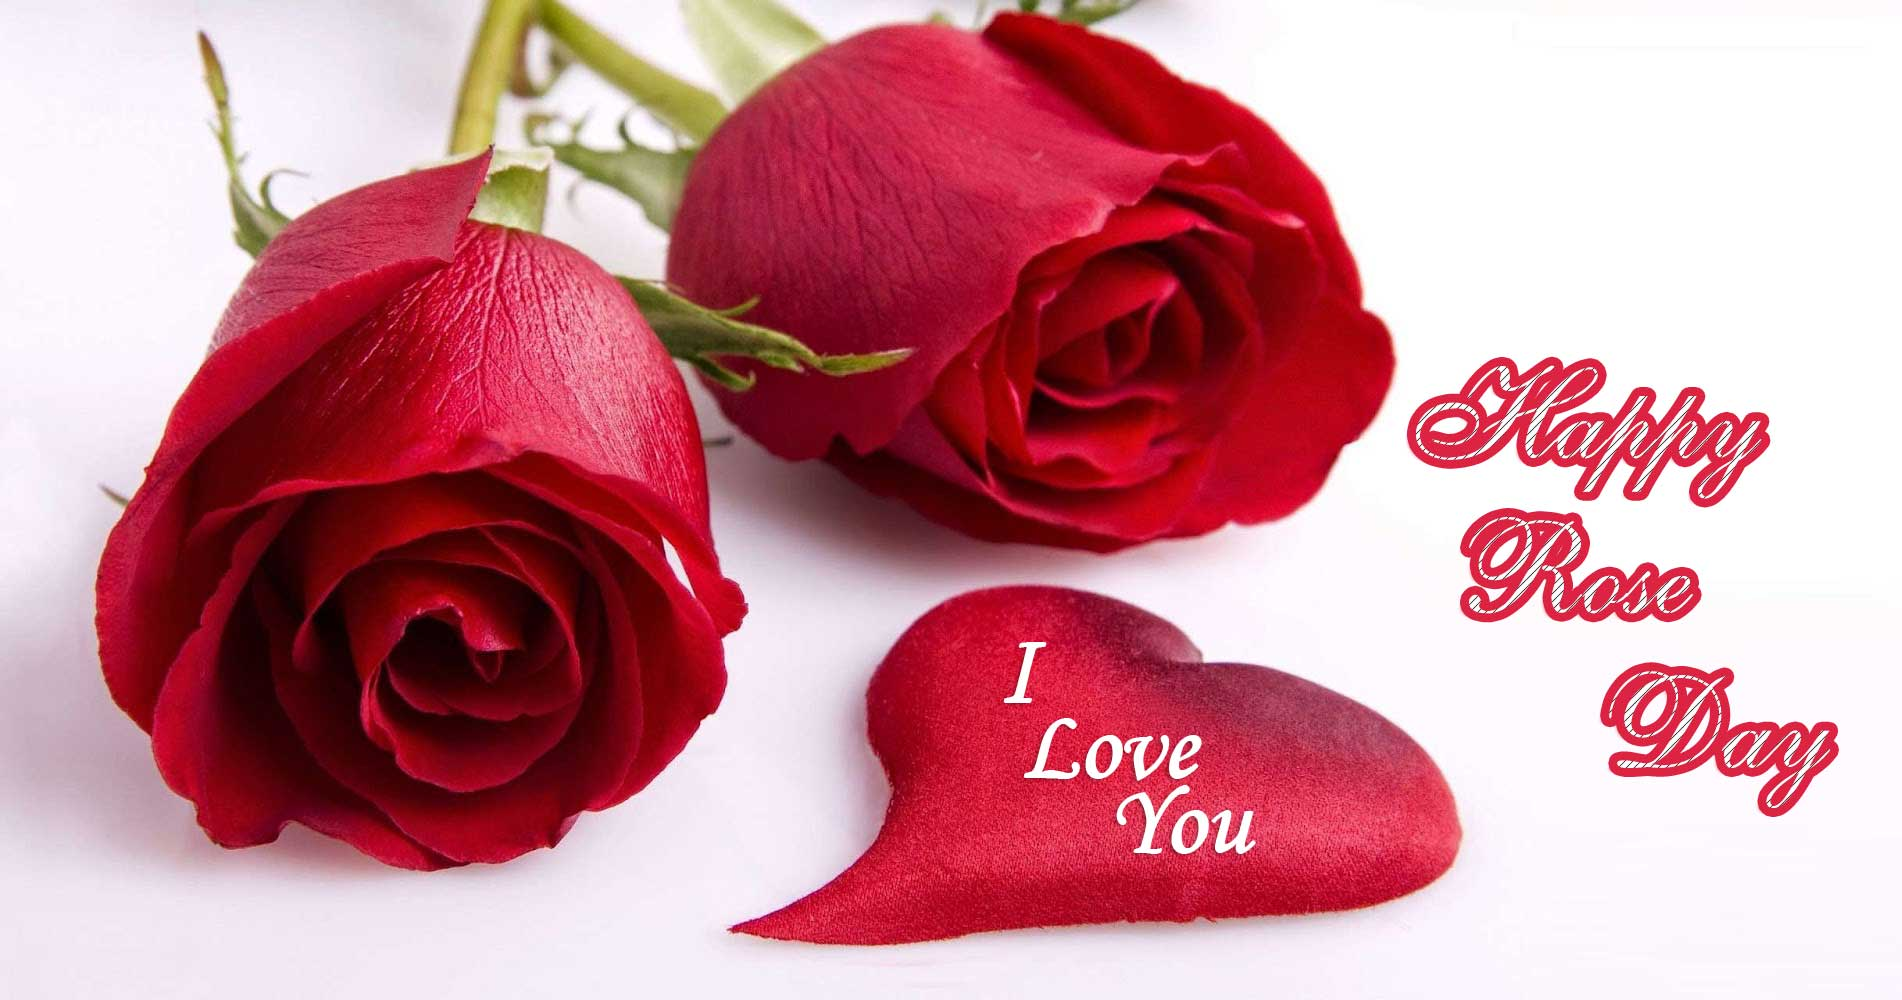 Happy Rose Day Image, Pictures & Wallpapers in HD